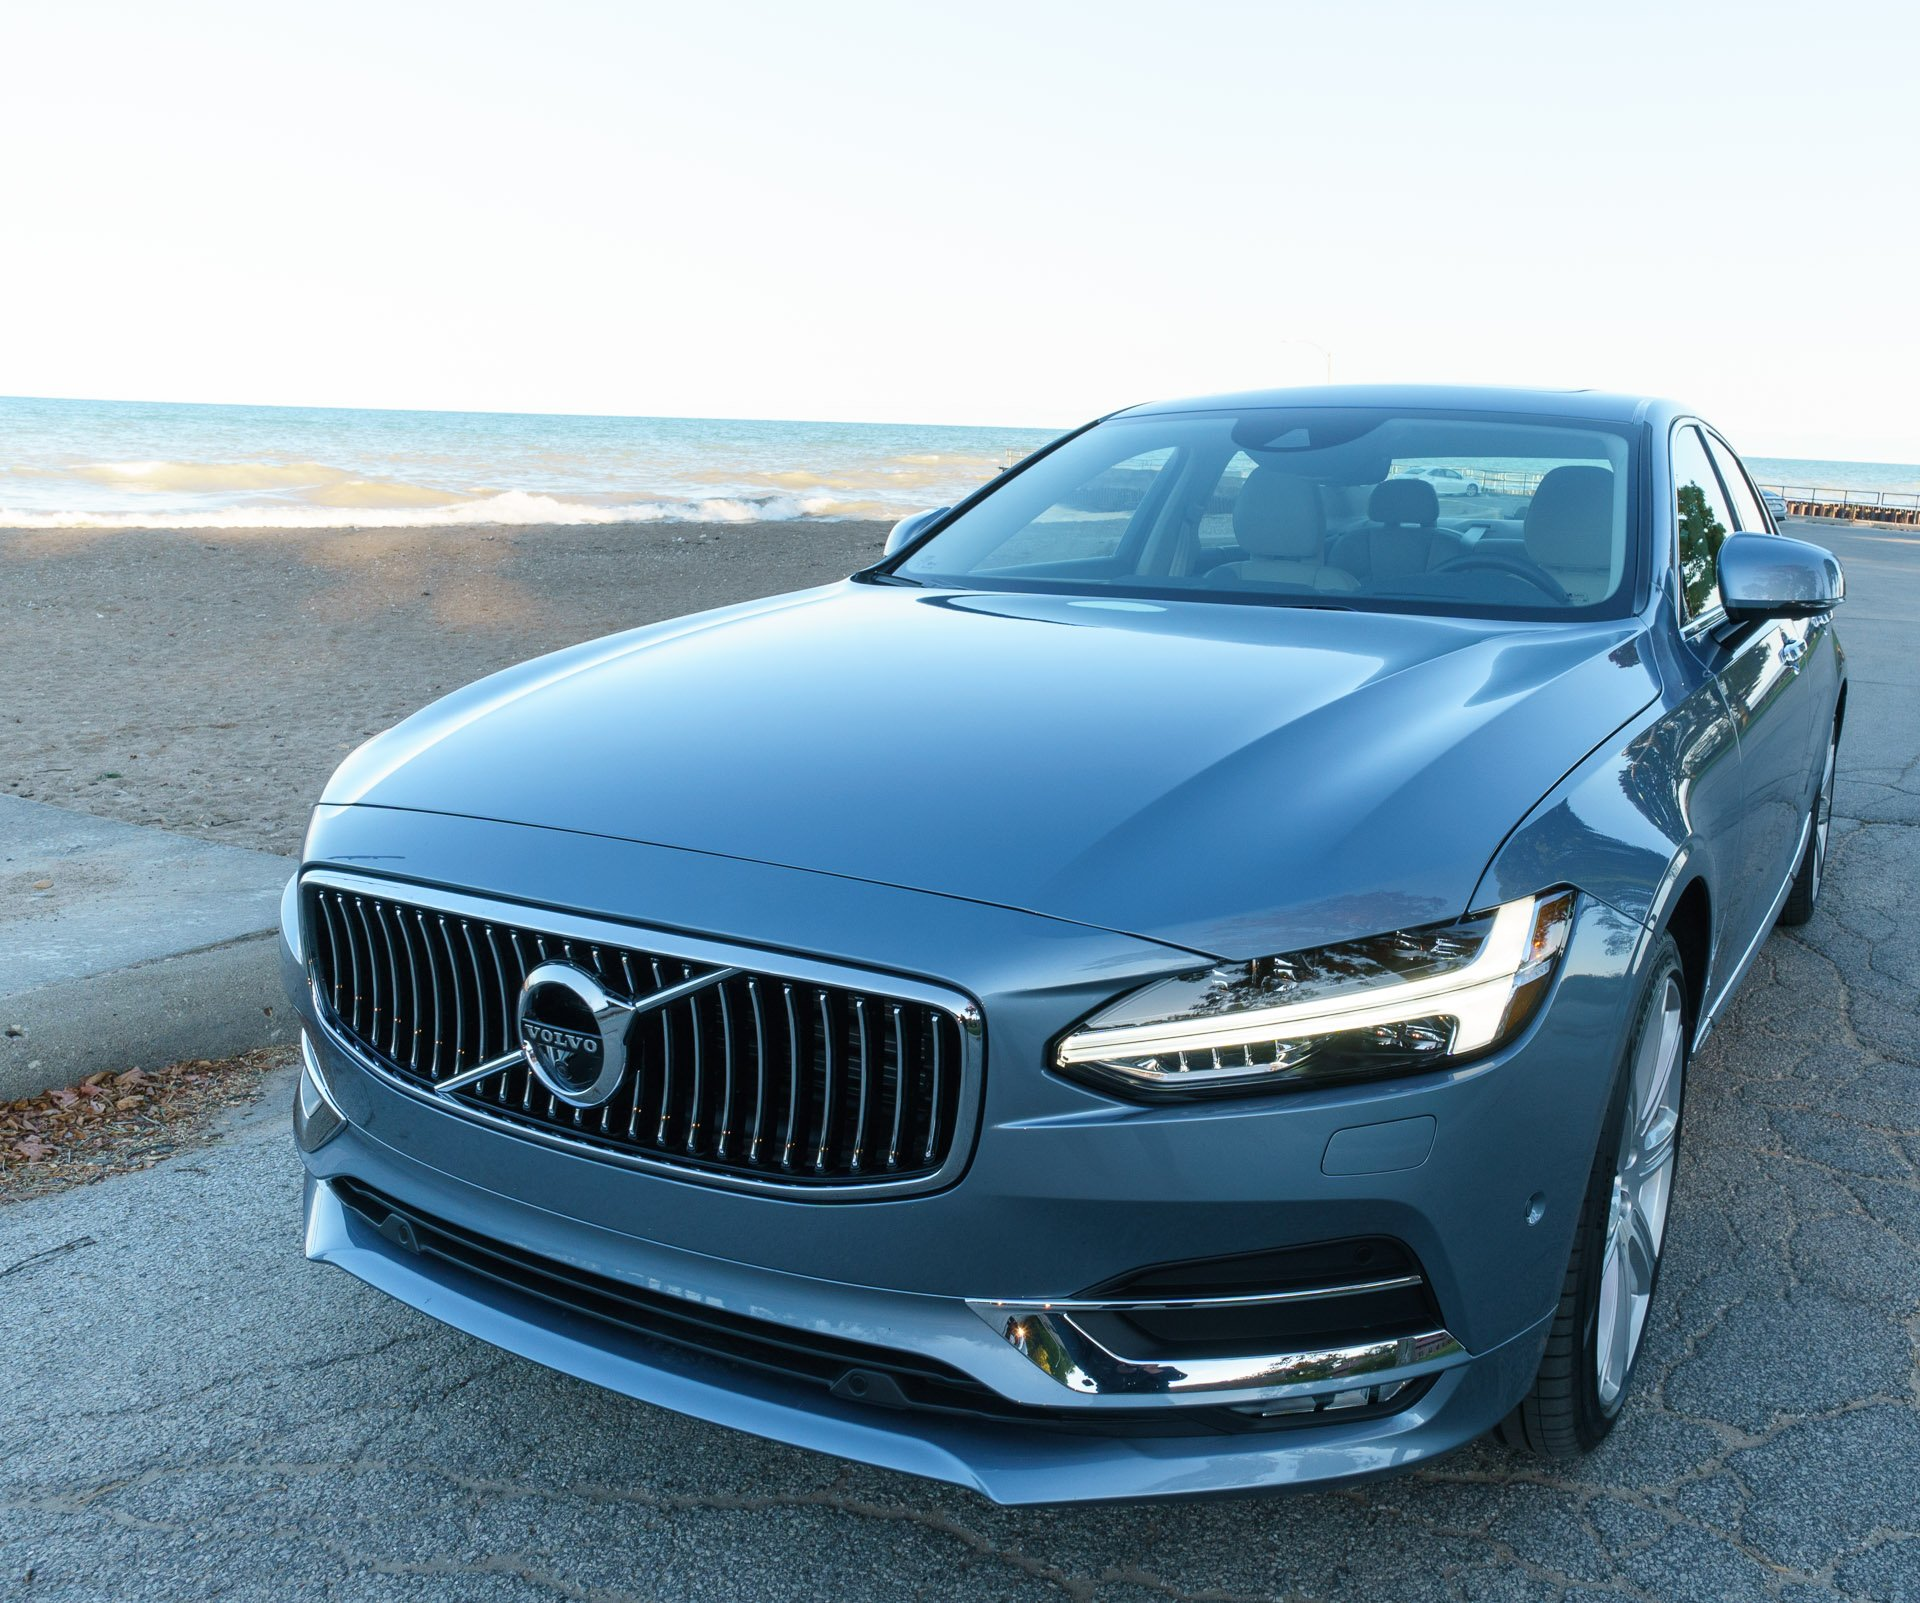 2019 Volvo S60 V60 And Xc60 T8 Are Getting Polestar: Review: 2017 Volvo S90 T6 AWD Inscription